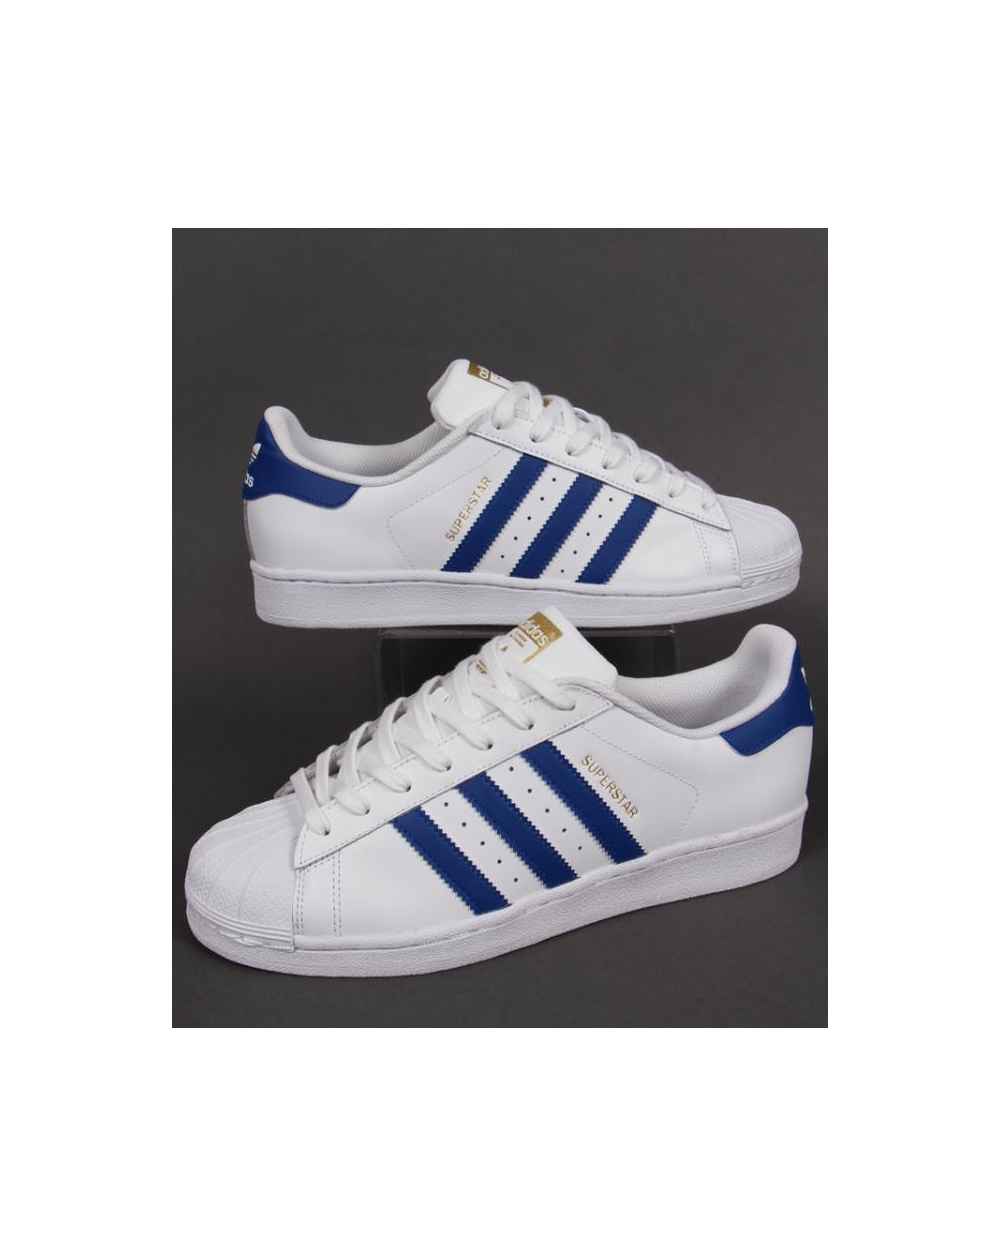 40a68fc992b4 Adidas Superstar Foundation Trainers White royal Blue